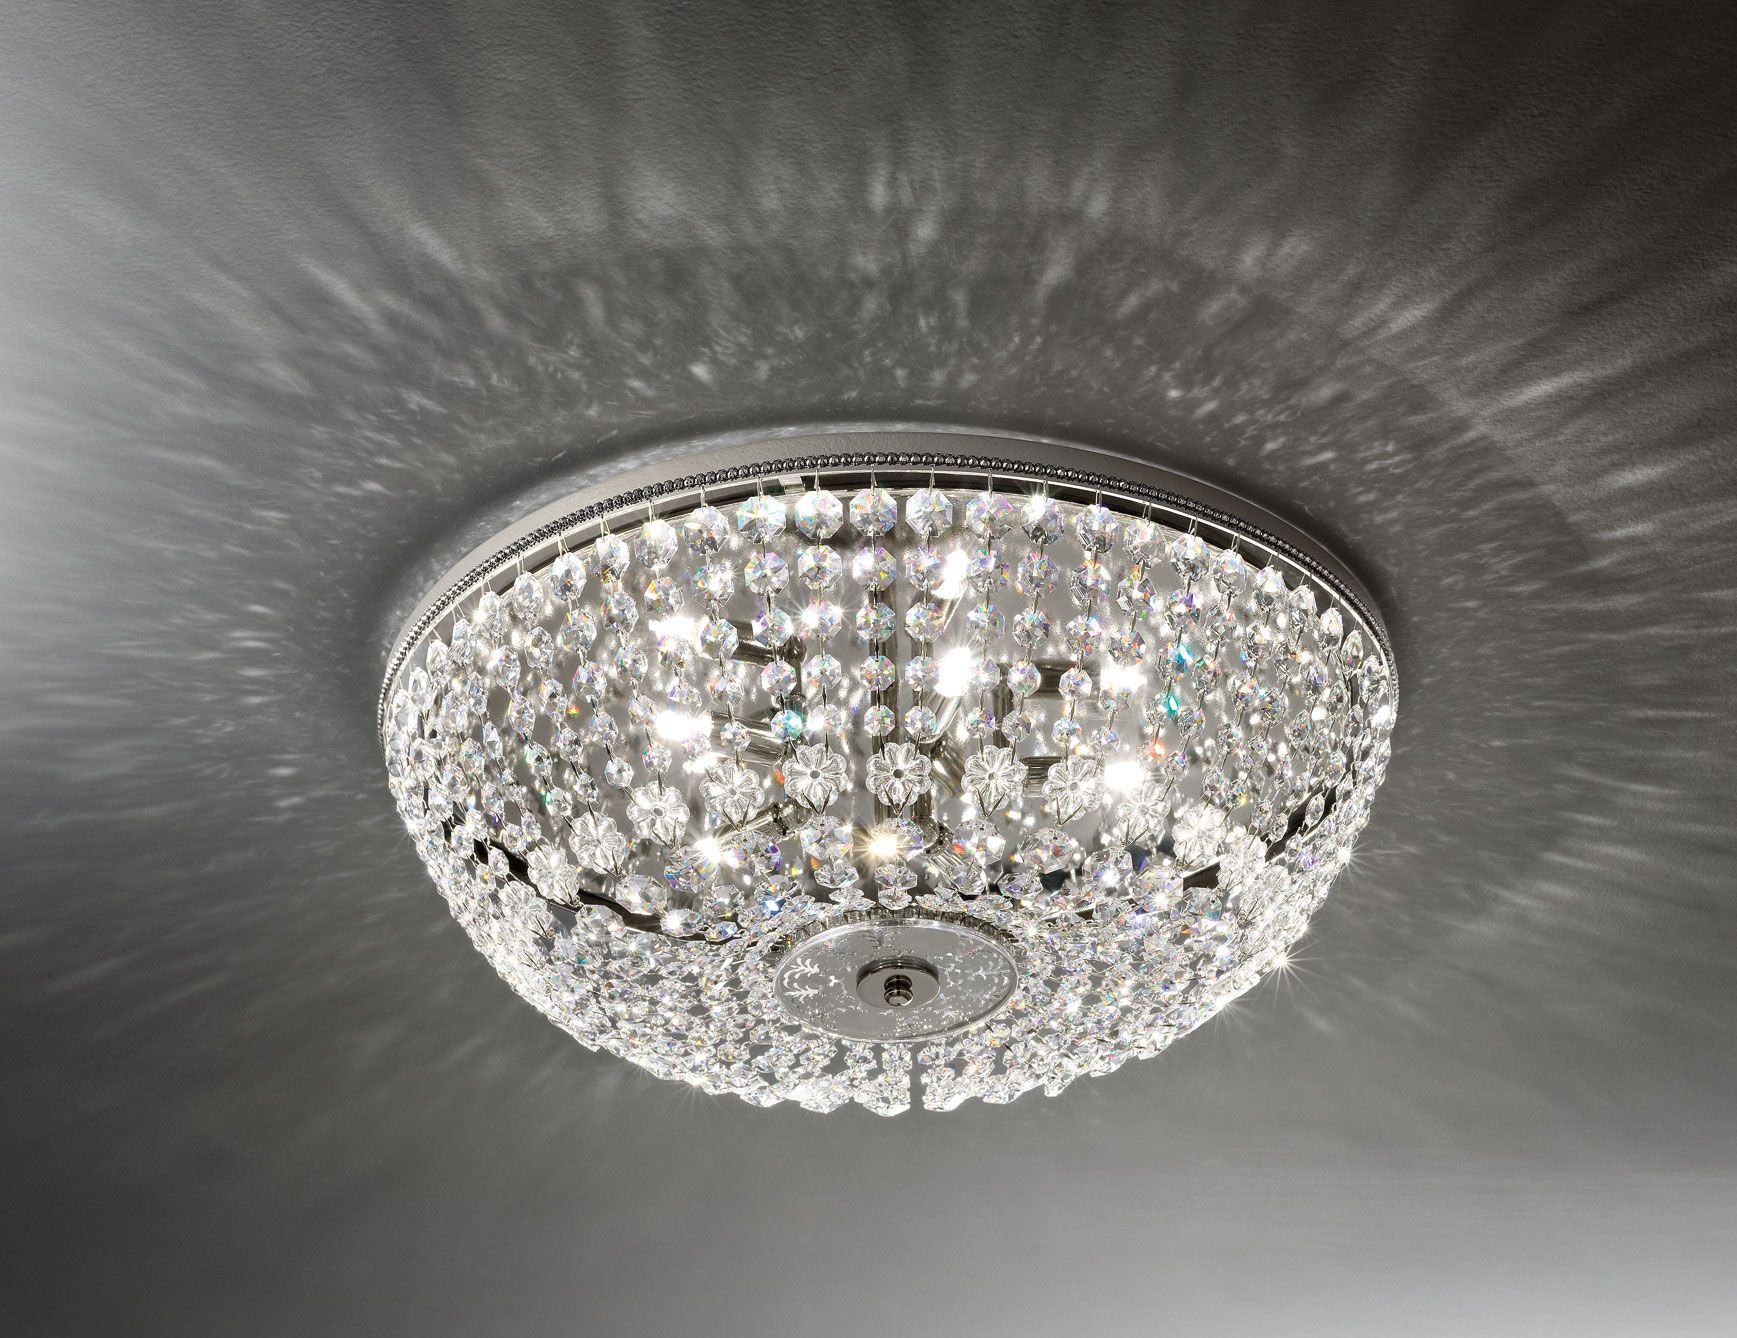 Swarovski Crystal Lighting Fixtures For